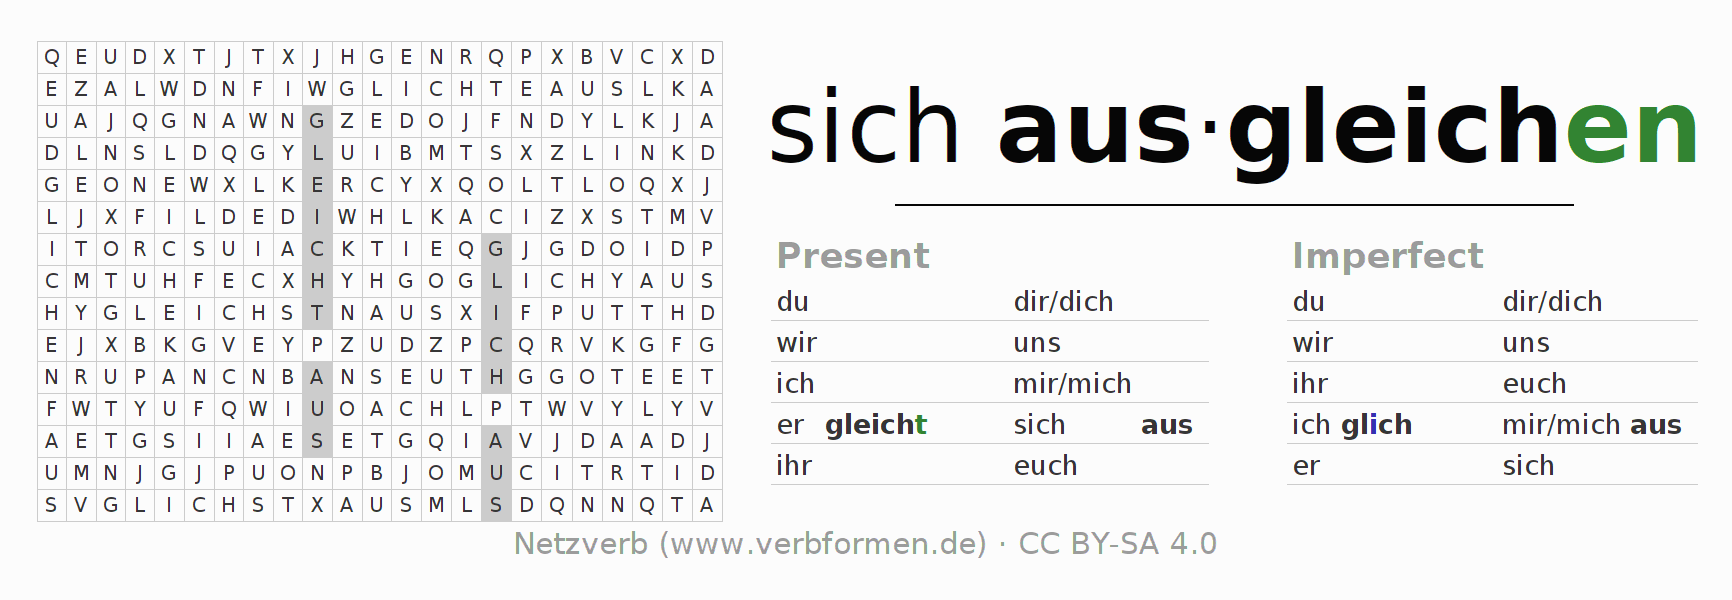 Word search puzzle for the conjugation of the verb sich ausgleichen